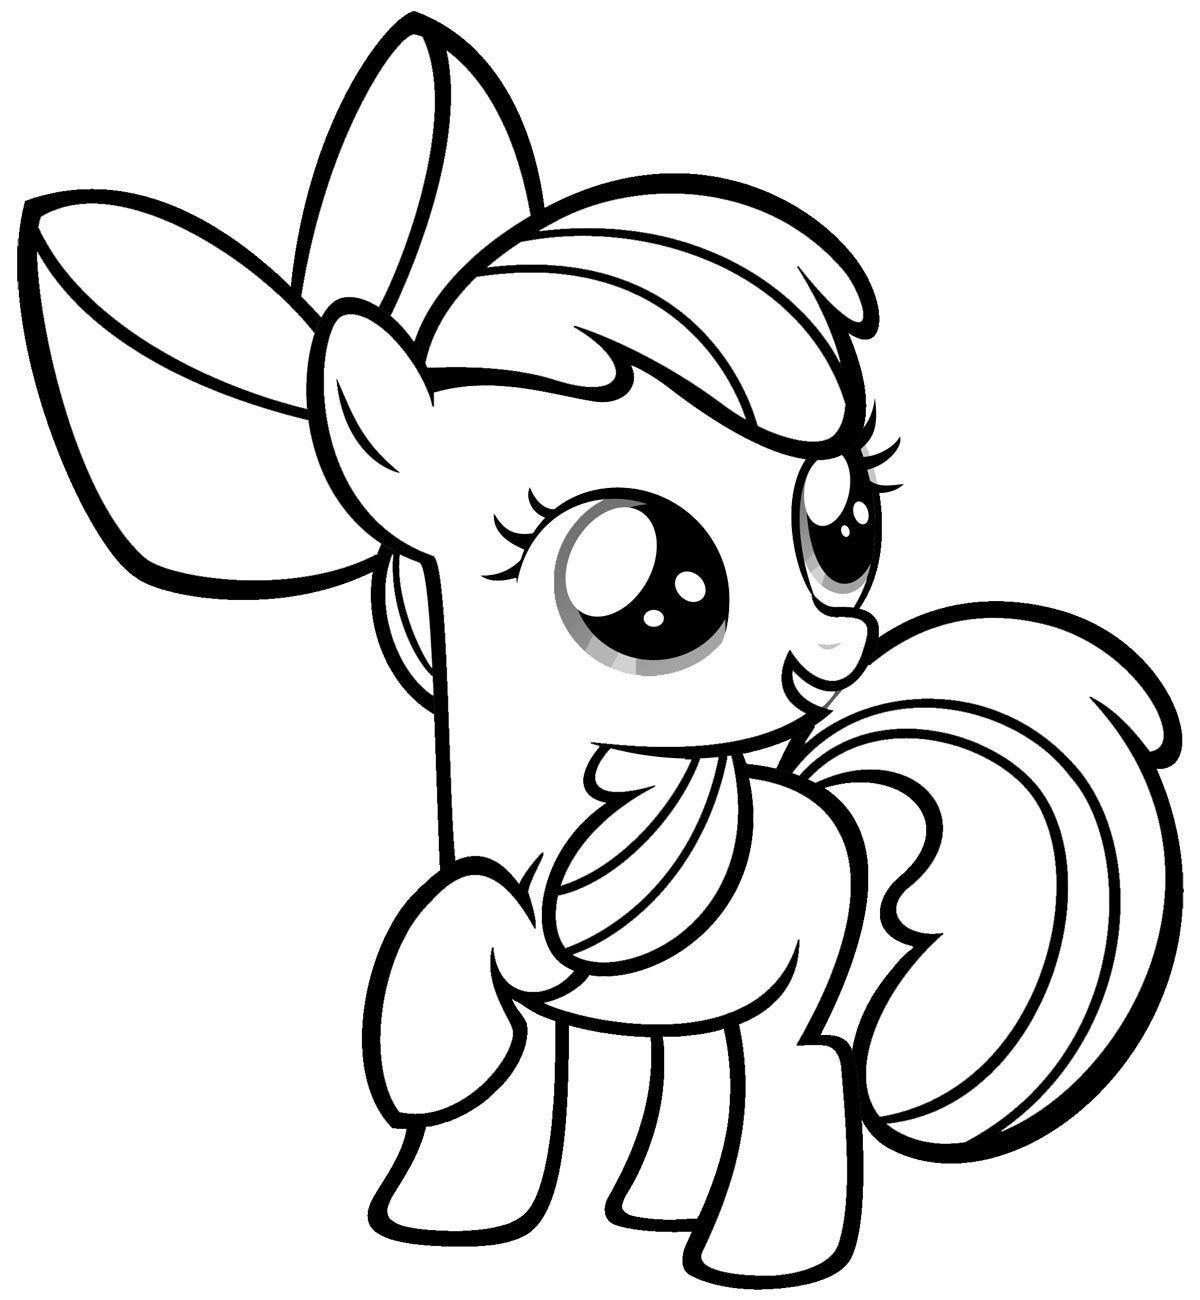 Best ideas about Pony Printable Coloring Pages . Save or Pin Free Printable My Little Pony Coloring Pages For Kids Now.